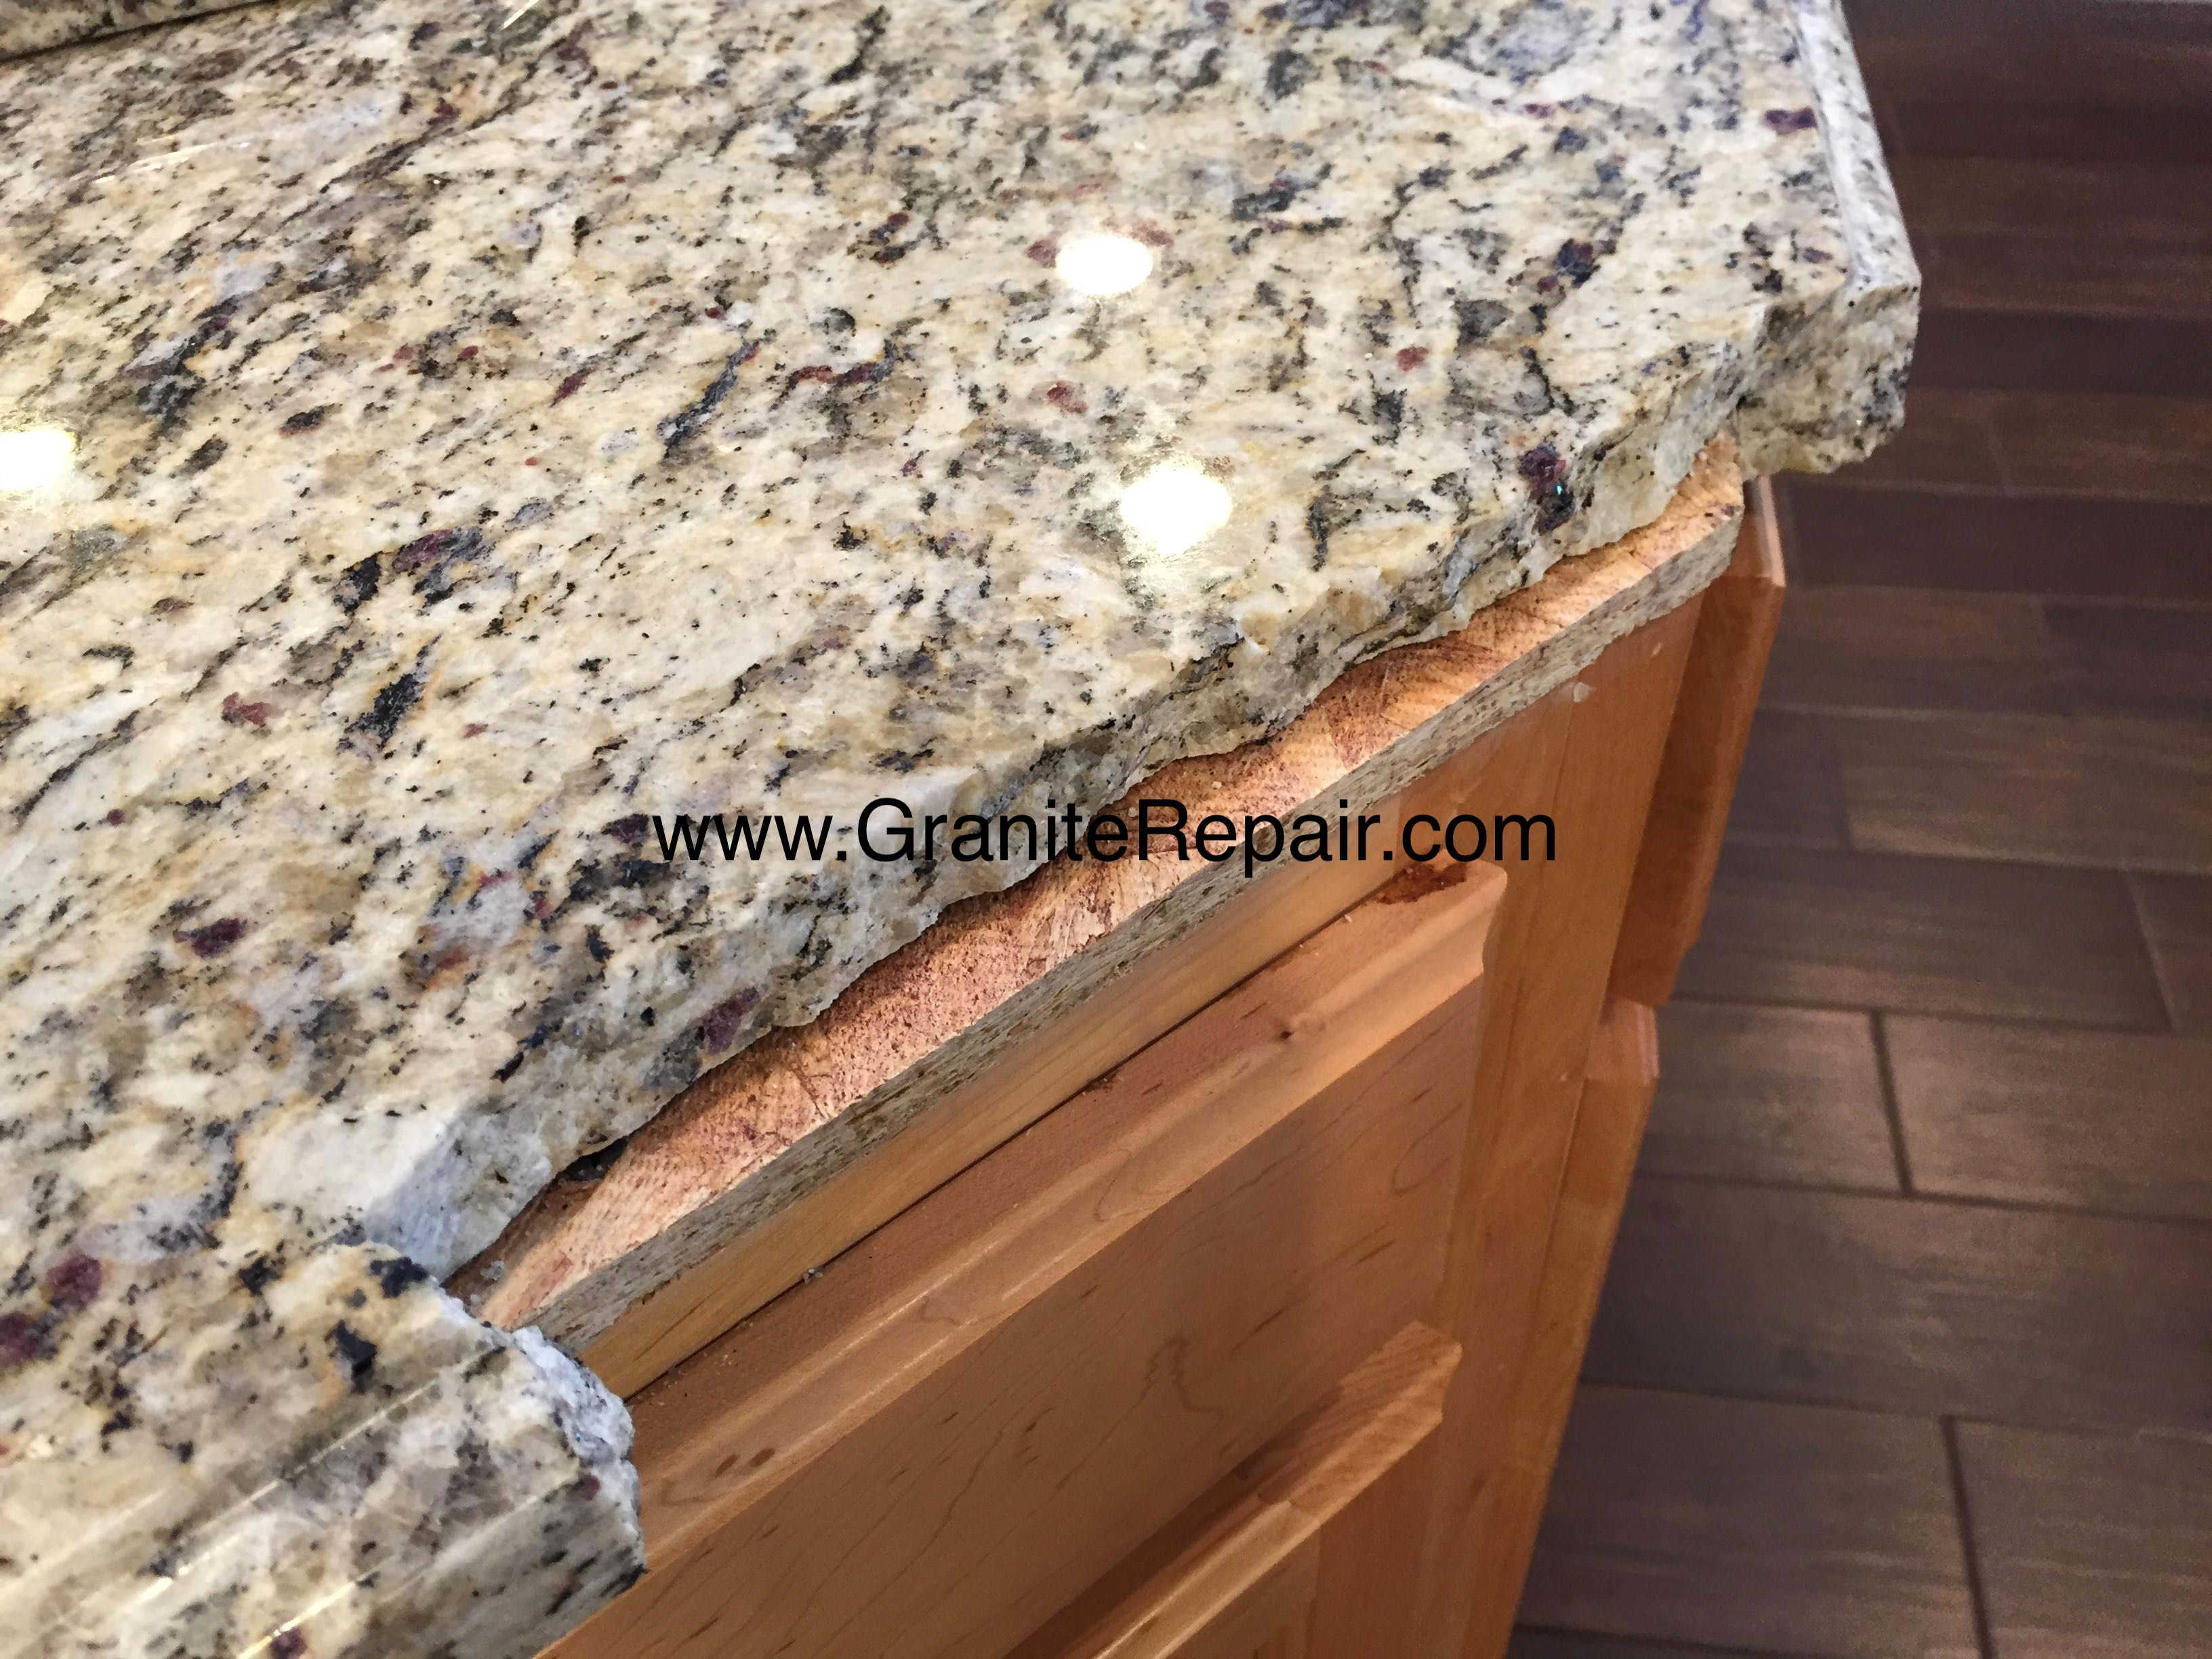 granite with beautiful deep shining of than its floors worktop catching new worktops care countertop an look your home restoration polishing are eye work countertops nothing top spectacular stone more cleaning makes absolute sparkle sealing and